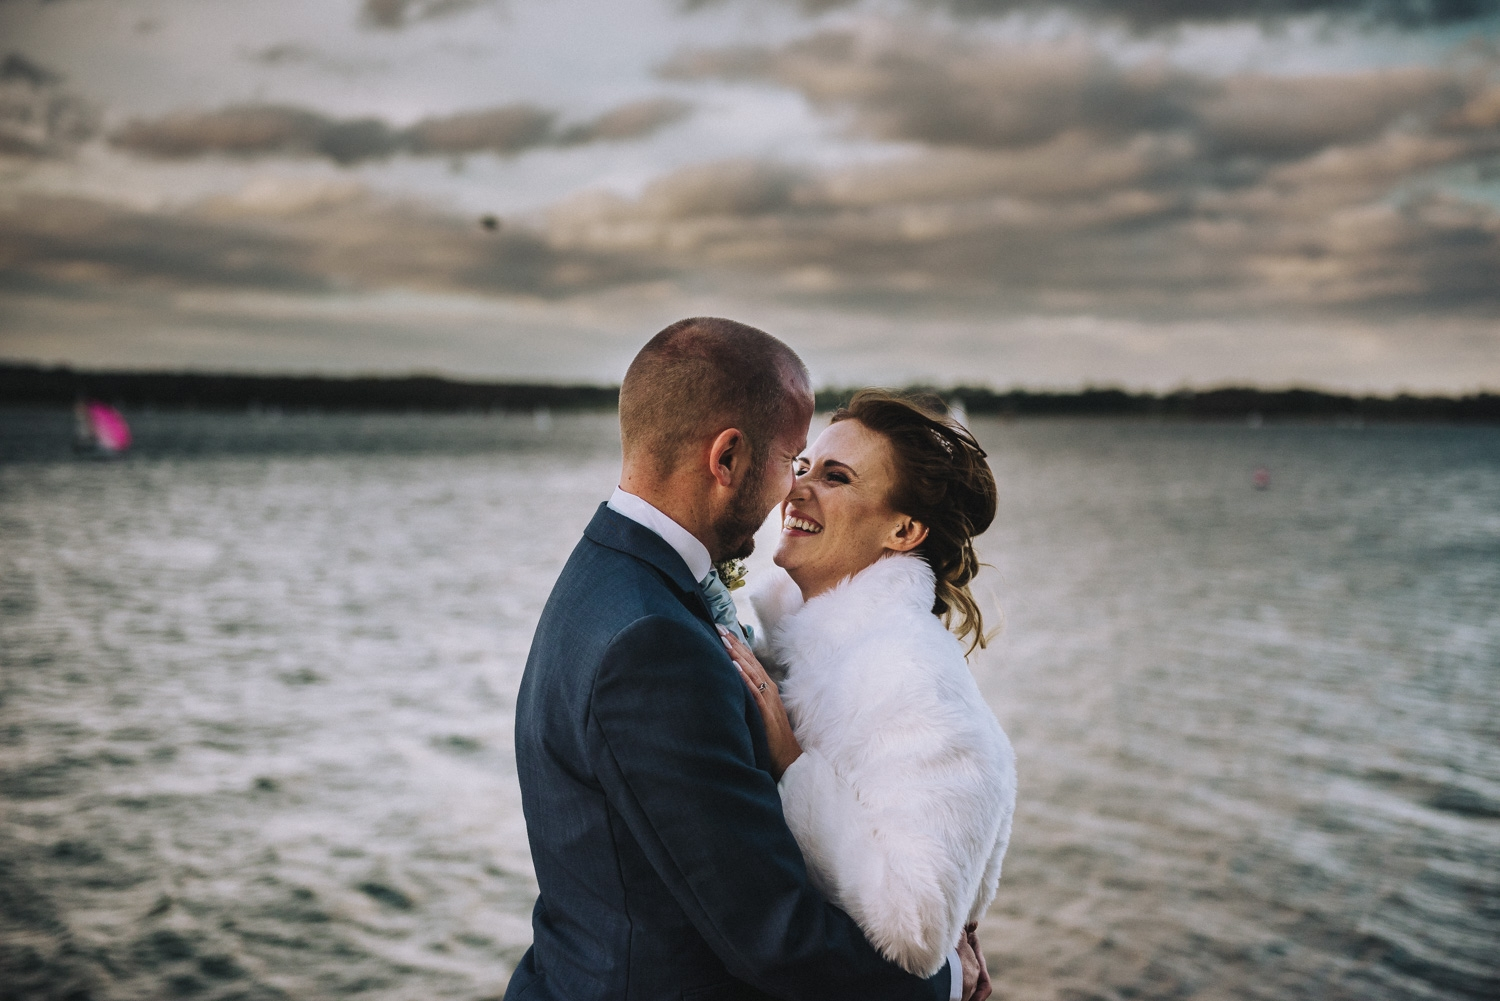 just married at rutland water nature reserve